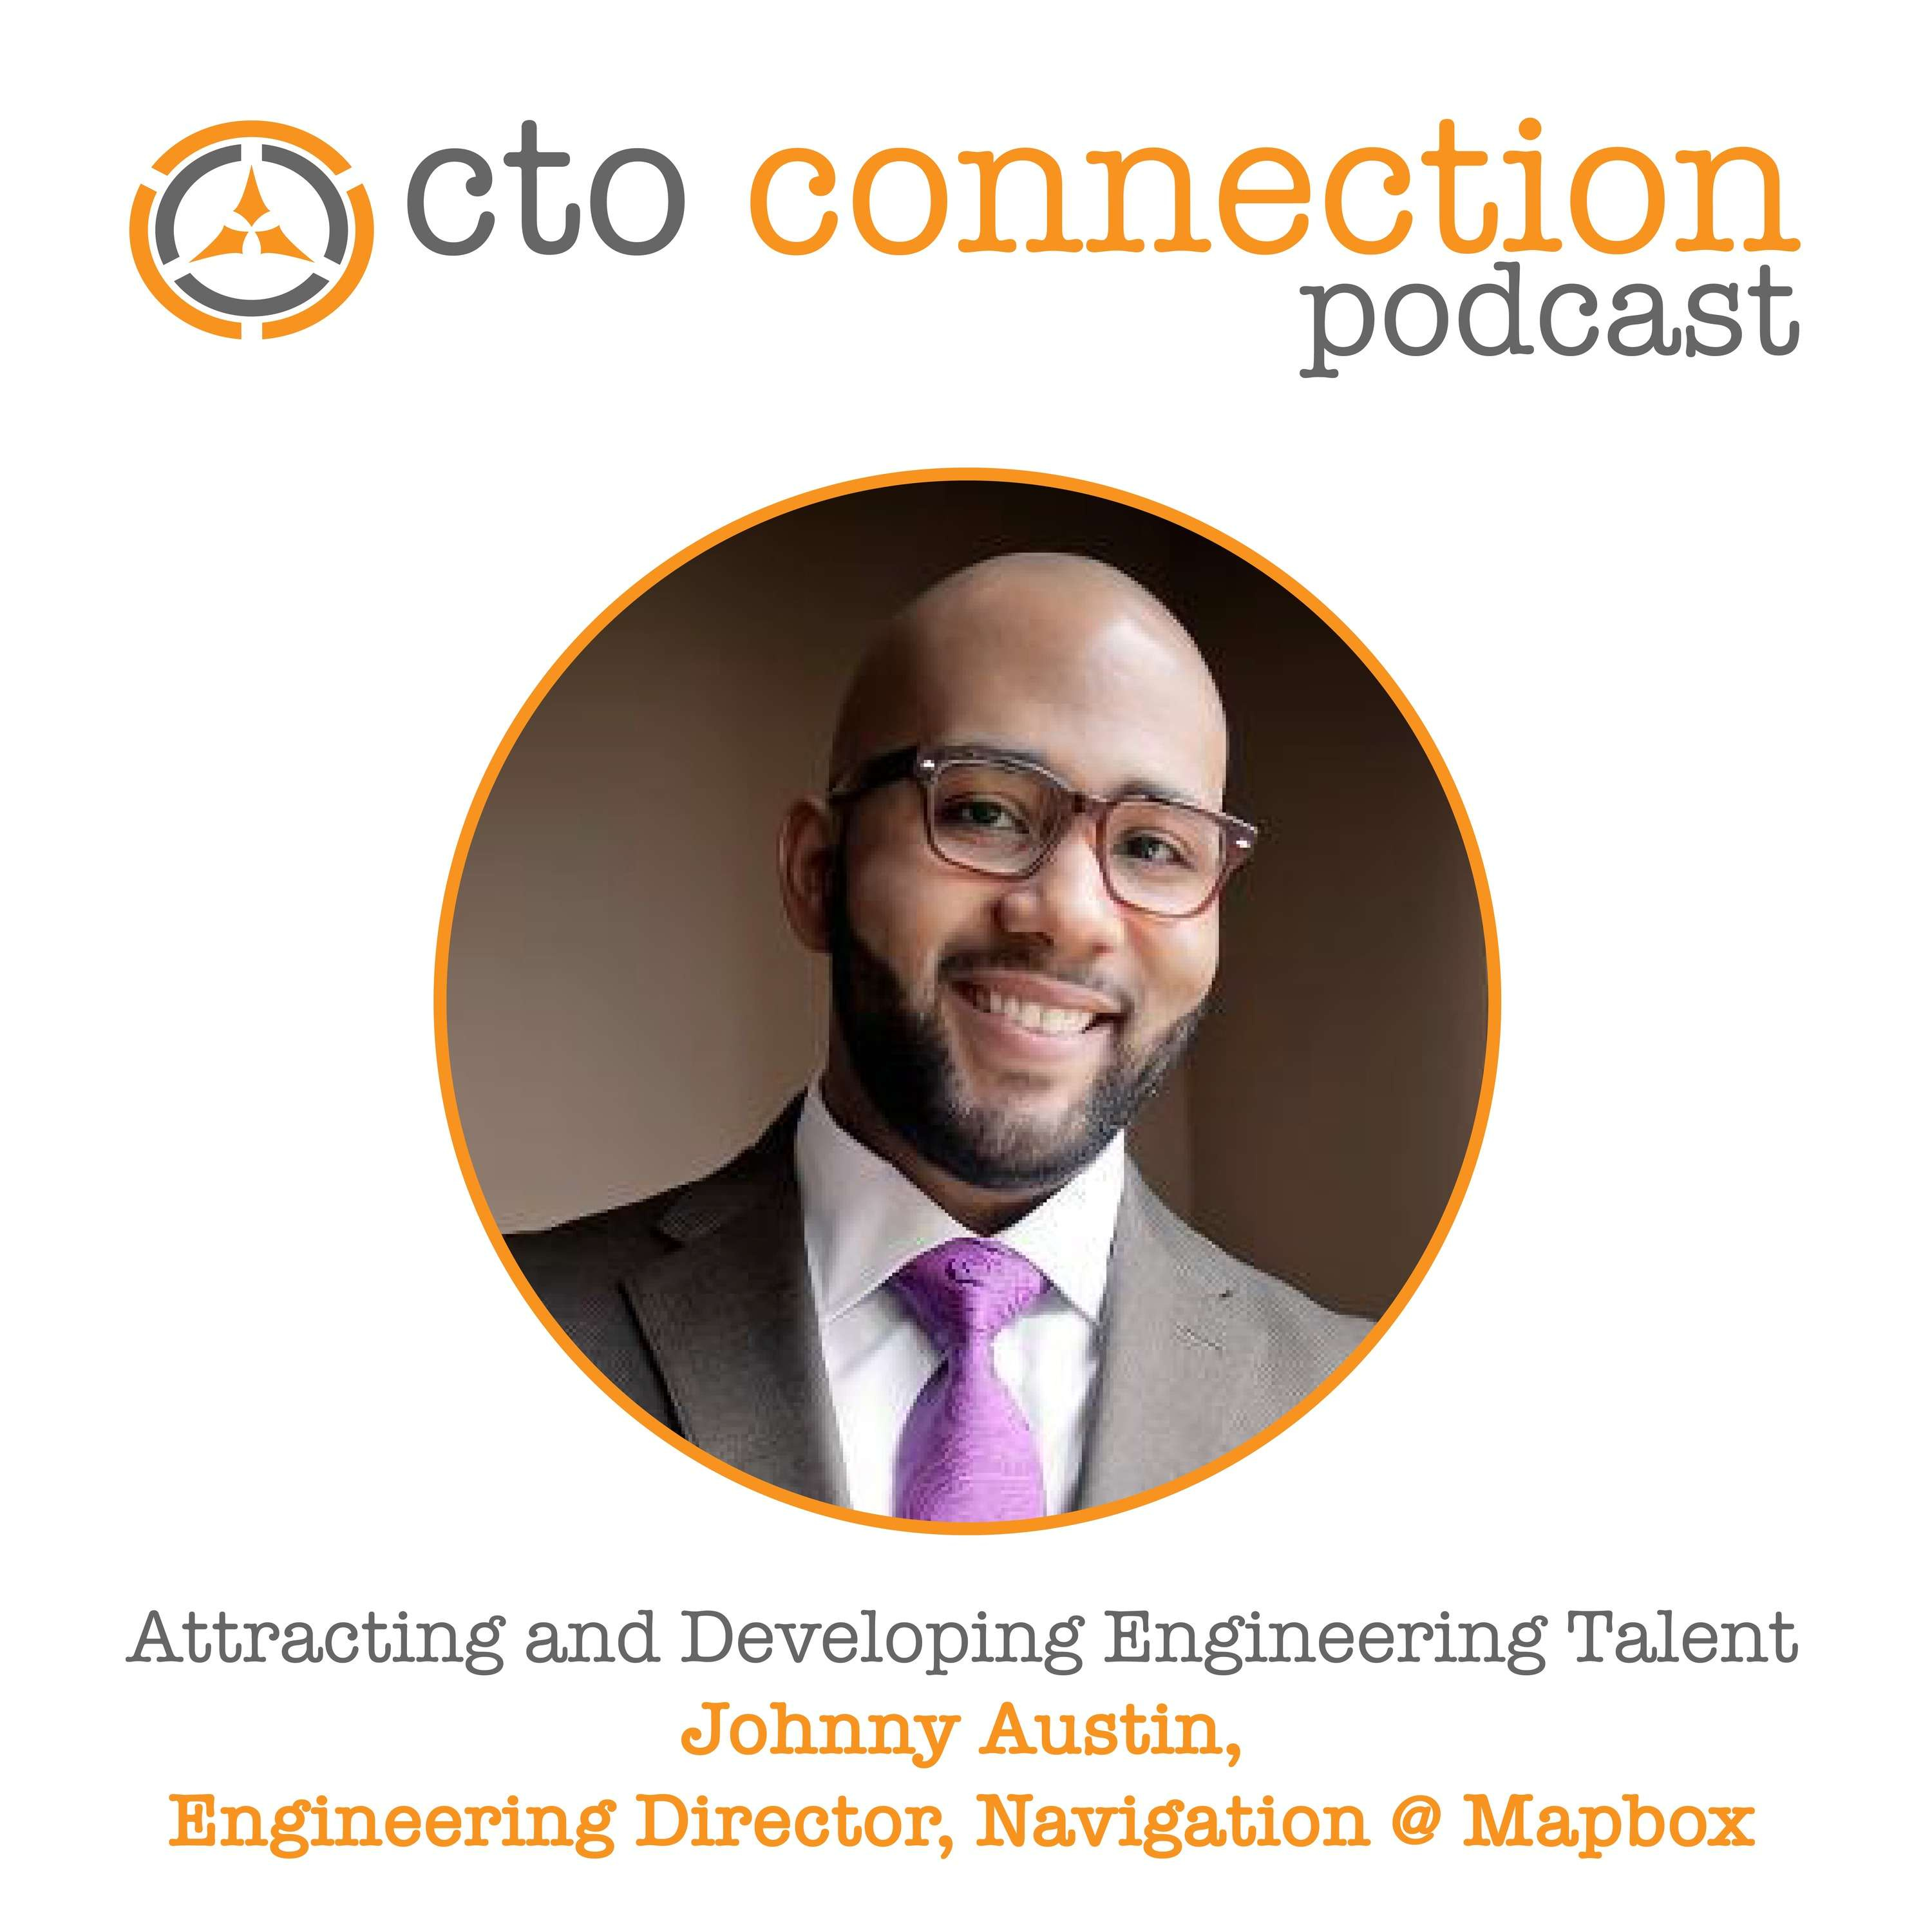 The CTO Connection Podcast